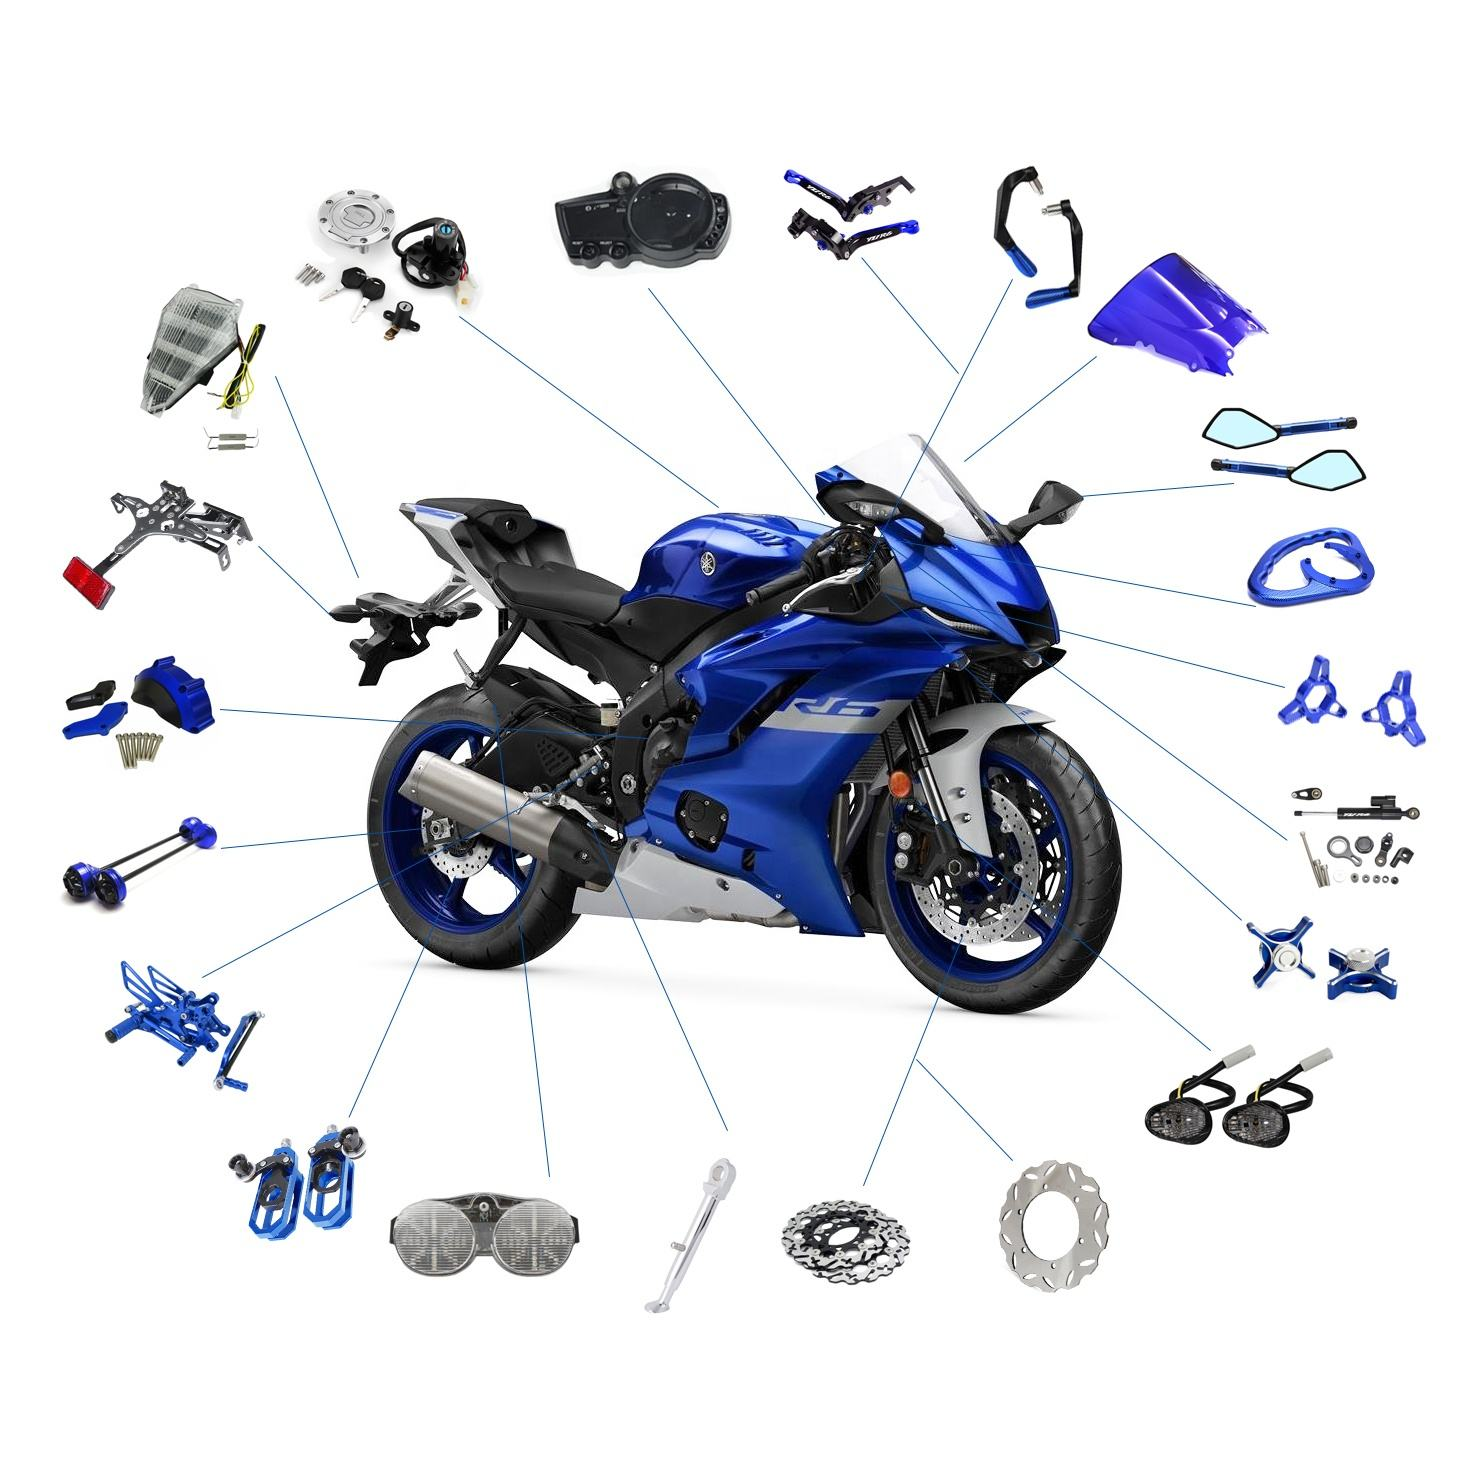 Realzion Customize Racing Motorcycle Accessories Dirtbike Chinese Wholesale Motorbike Body Systems Parts Spare Parts For YAMAHA